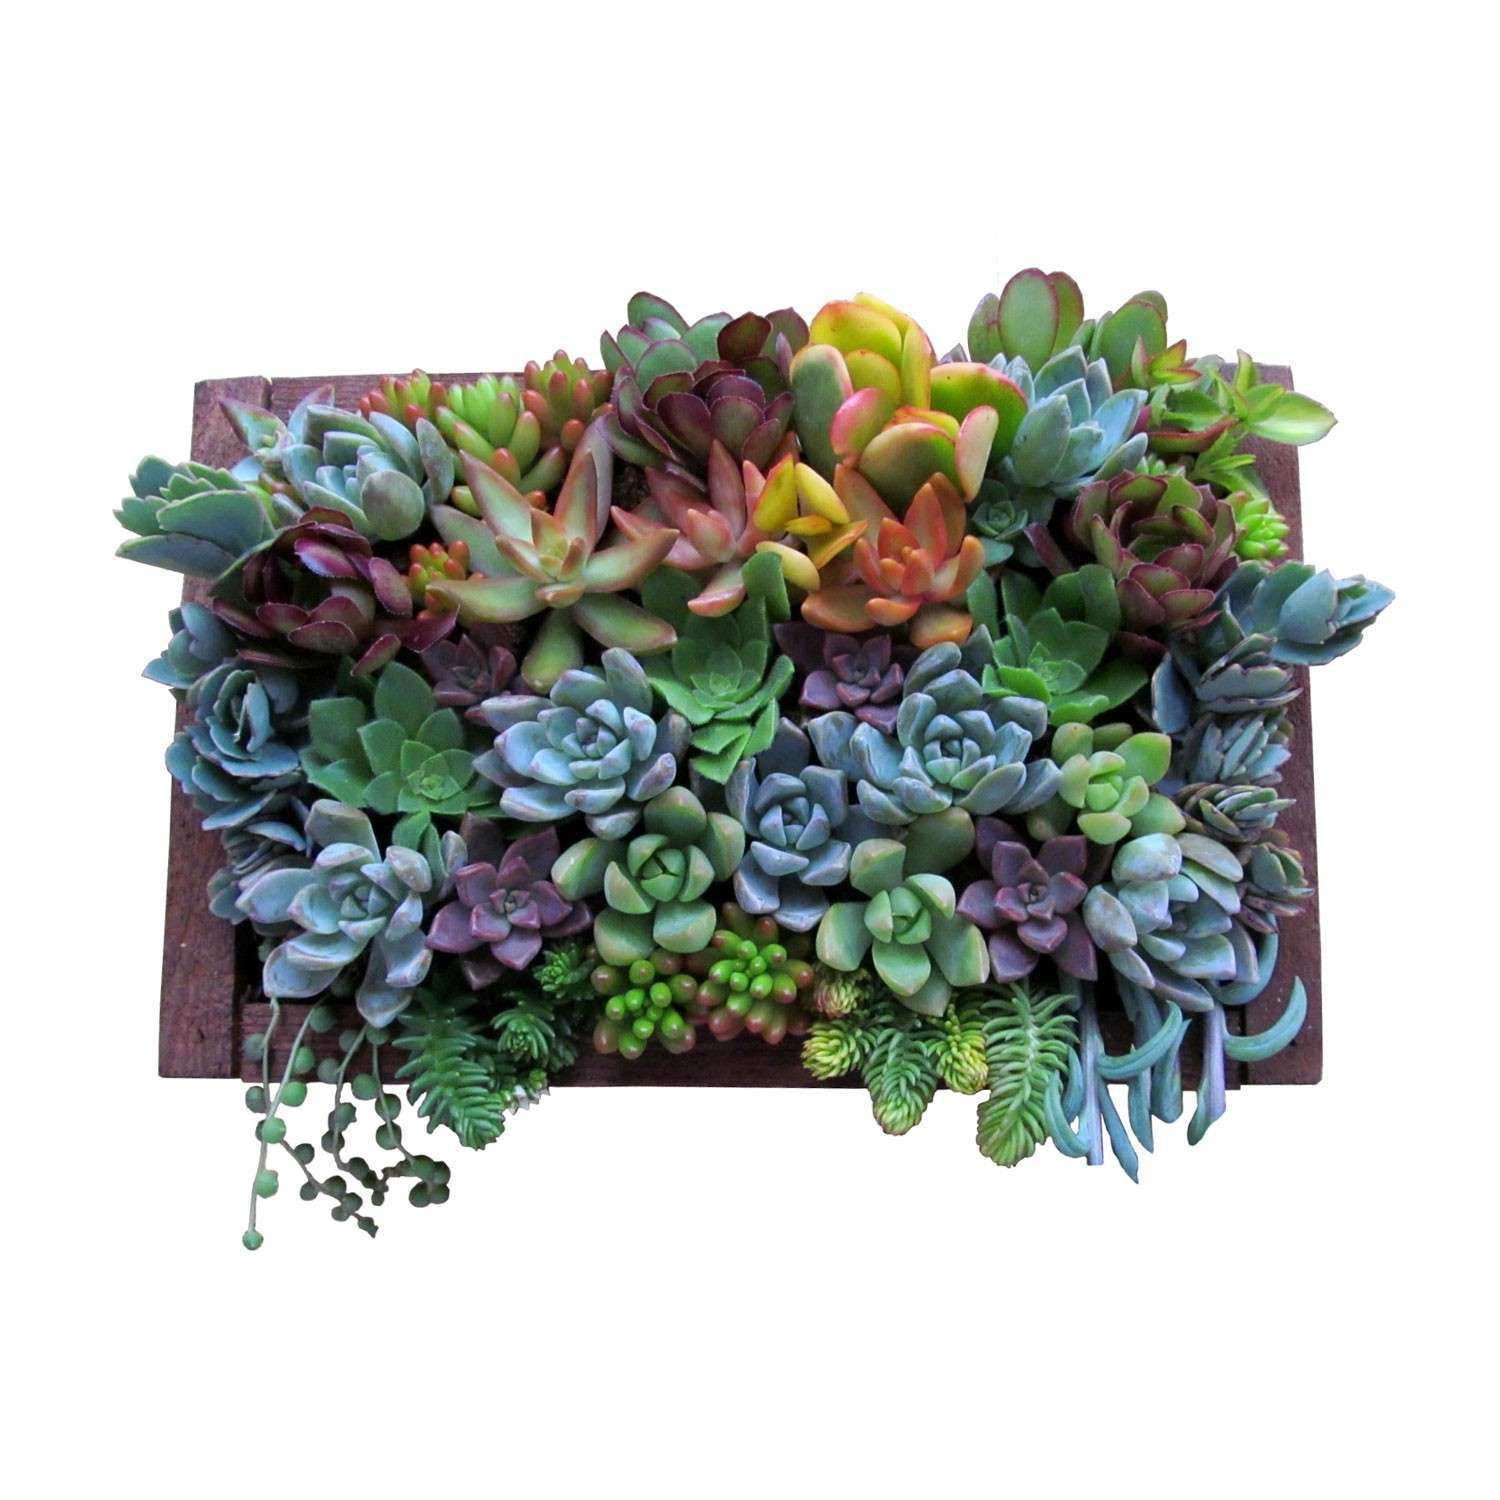 Real succulent plants for a hanging wall garden Gorgeous